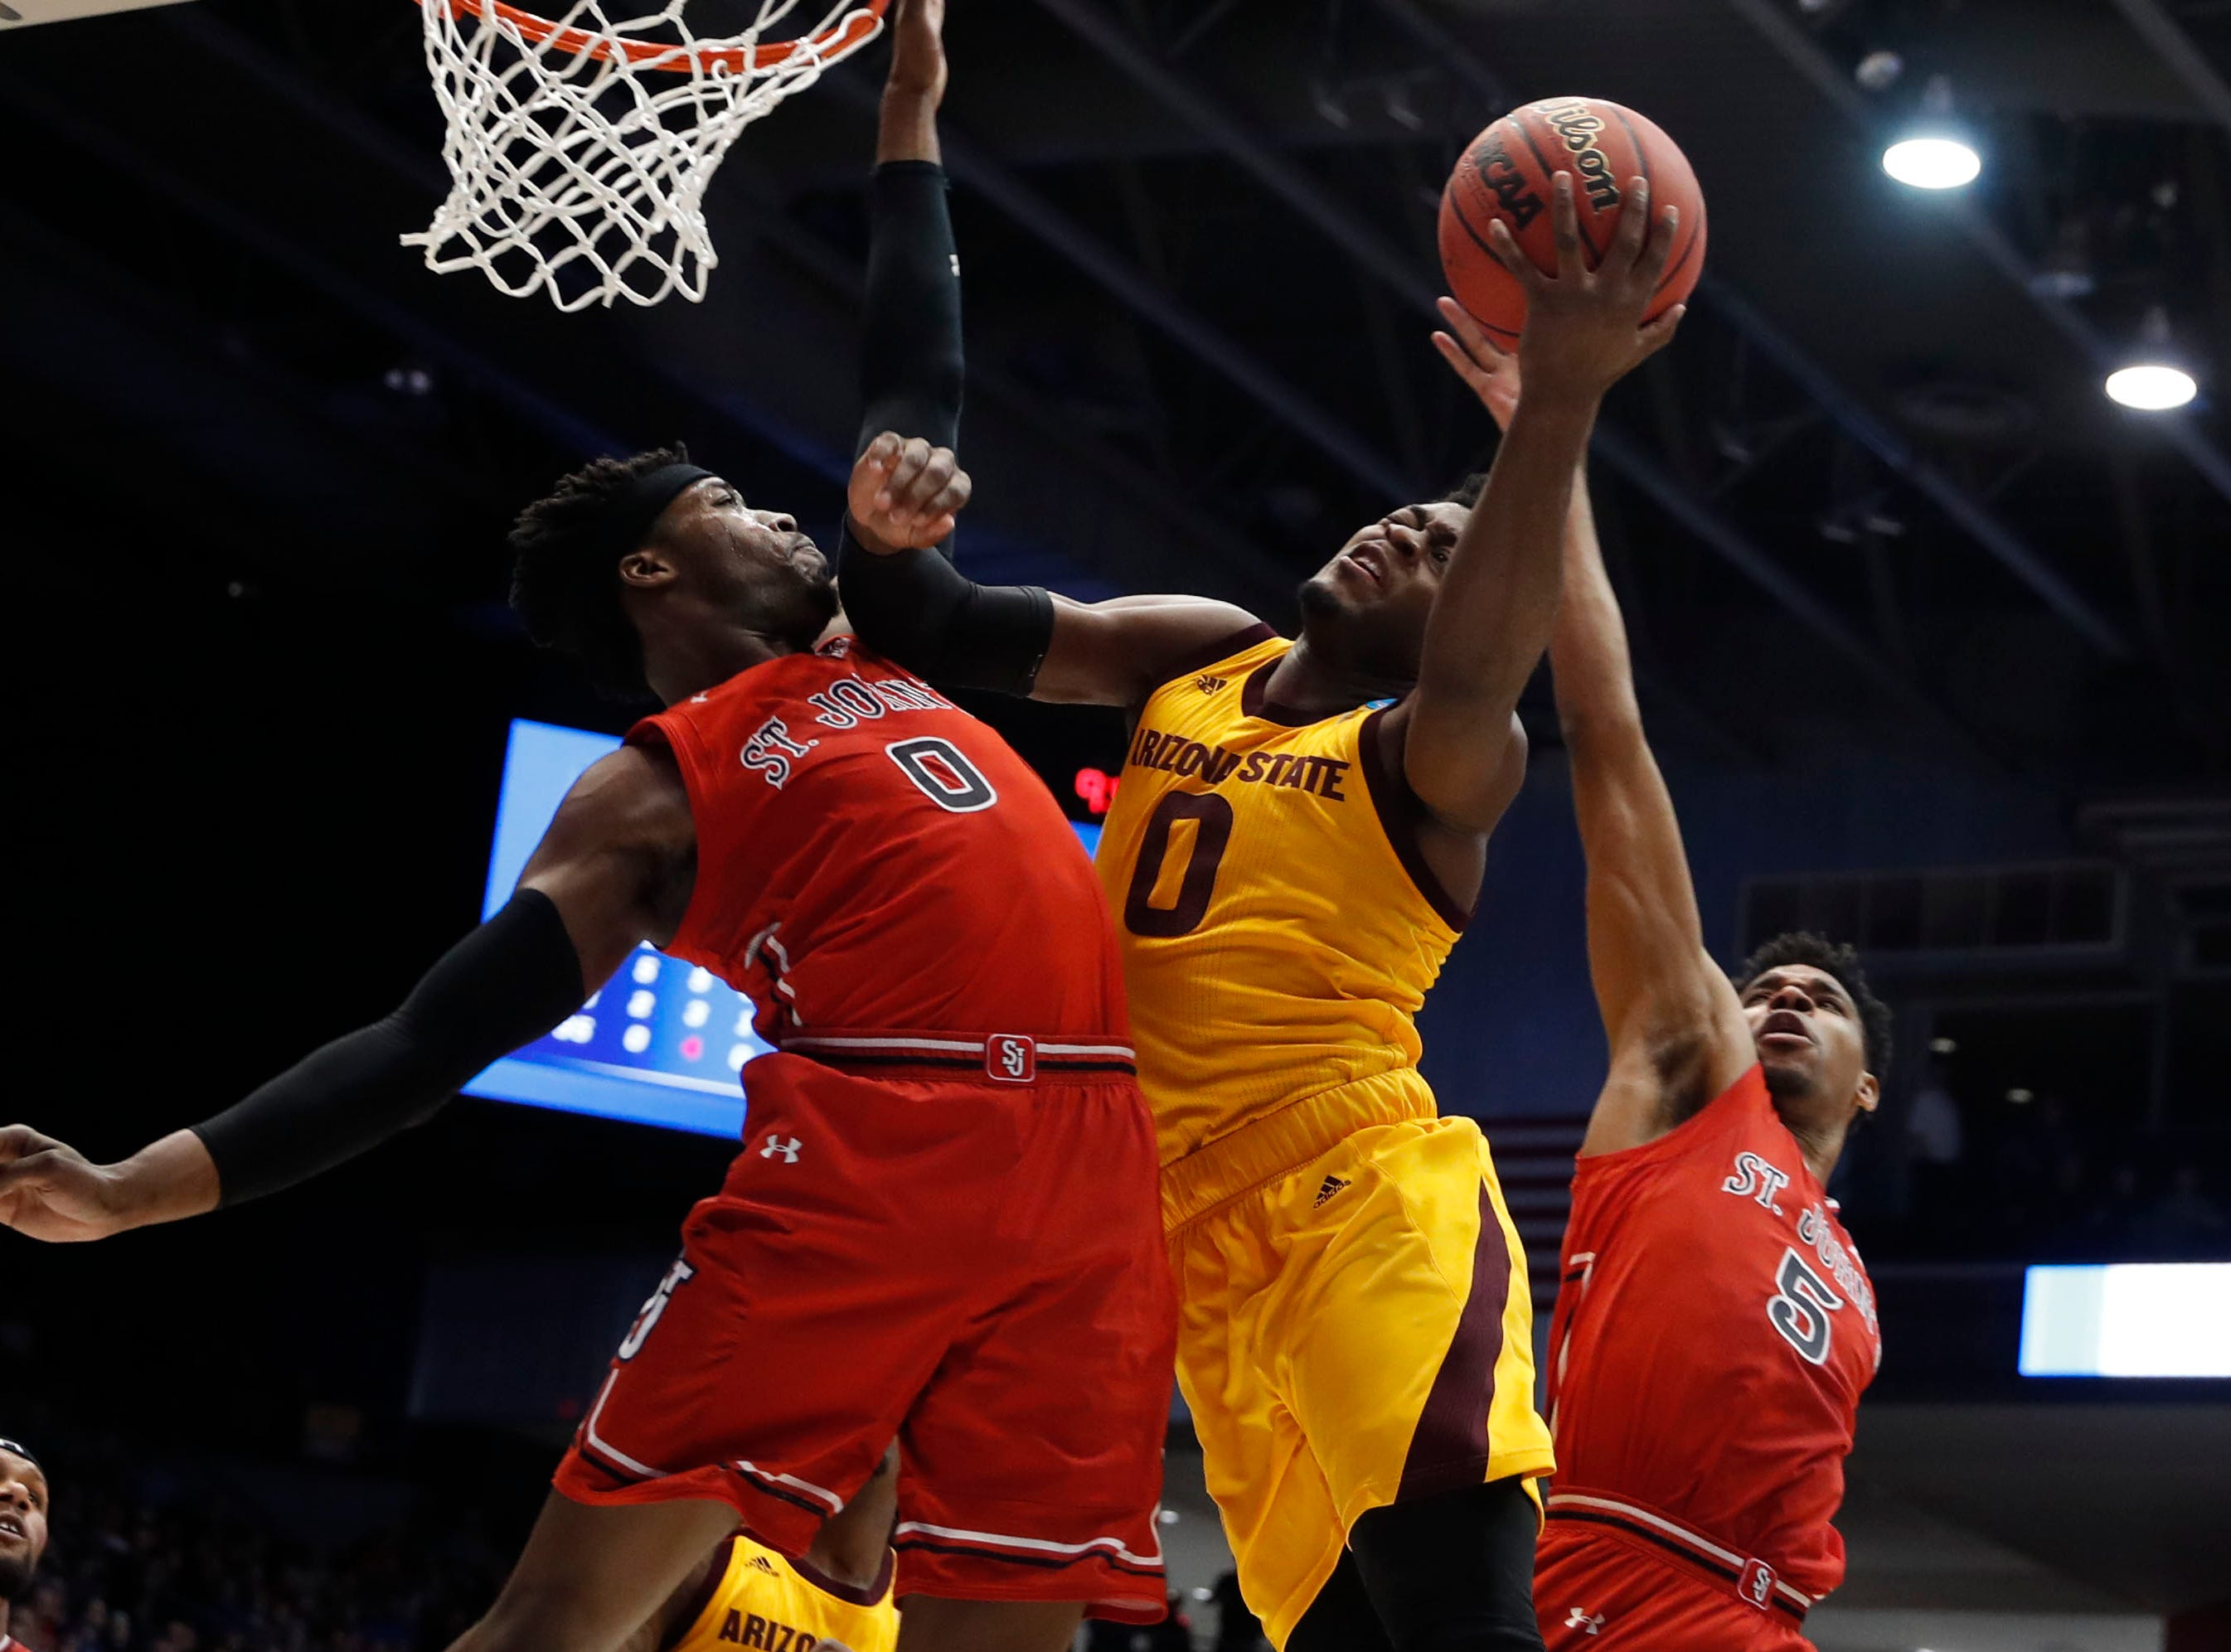 Arizona State Sun Devils guard Luguentz Dort (0) goes to the basket while defended by St. John's Red Storm forward Sedee Keita (0).